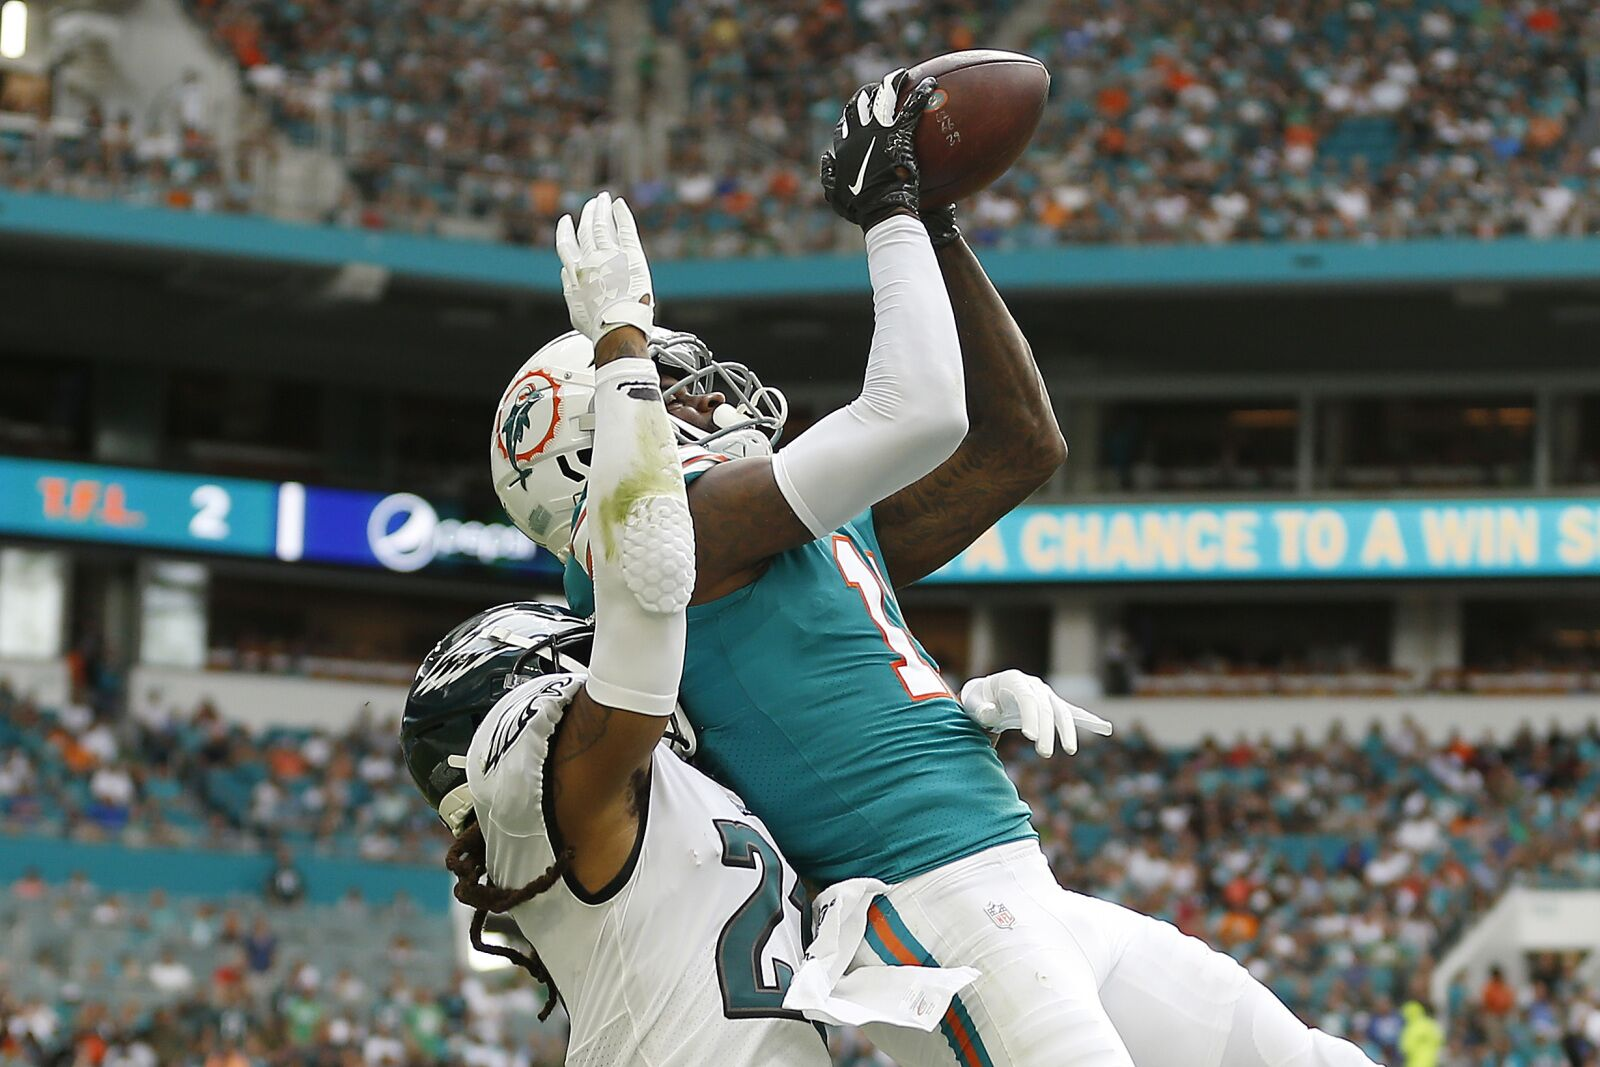 Dolphins DeVante Paker snubbed for Pro Bowl while Tannehill is added